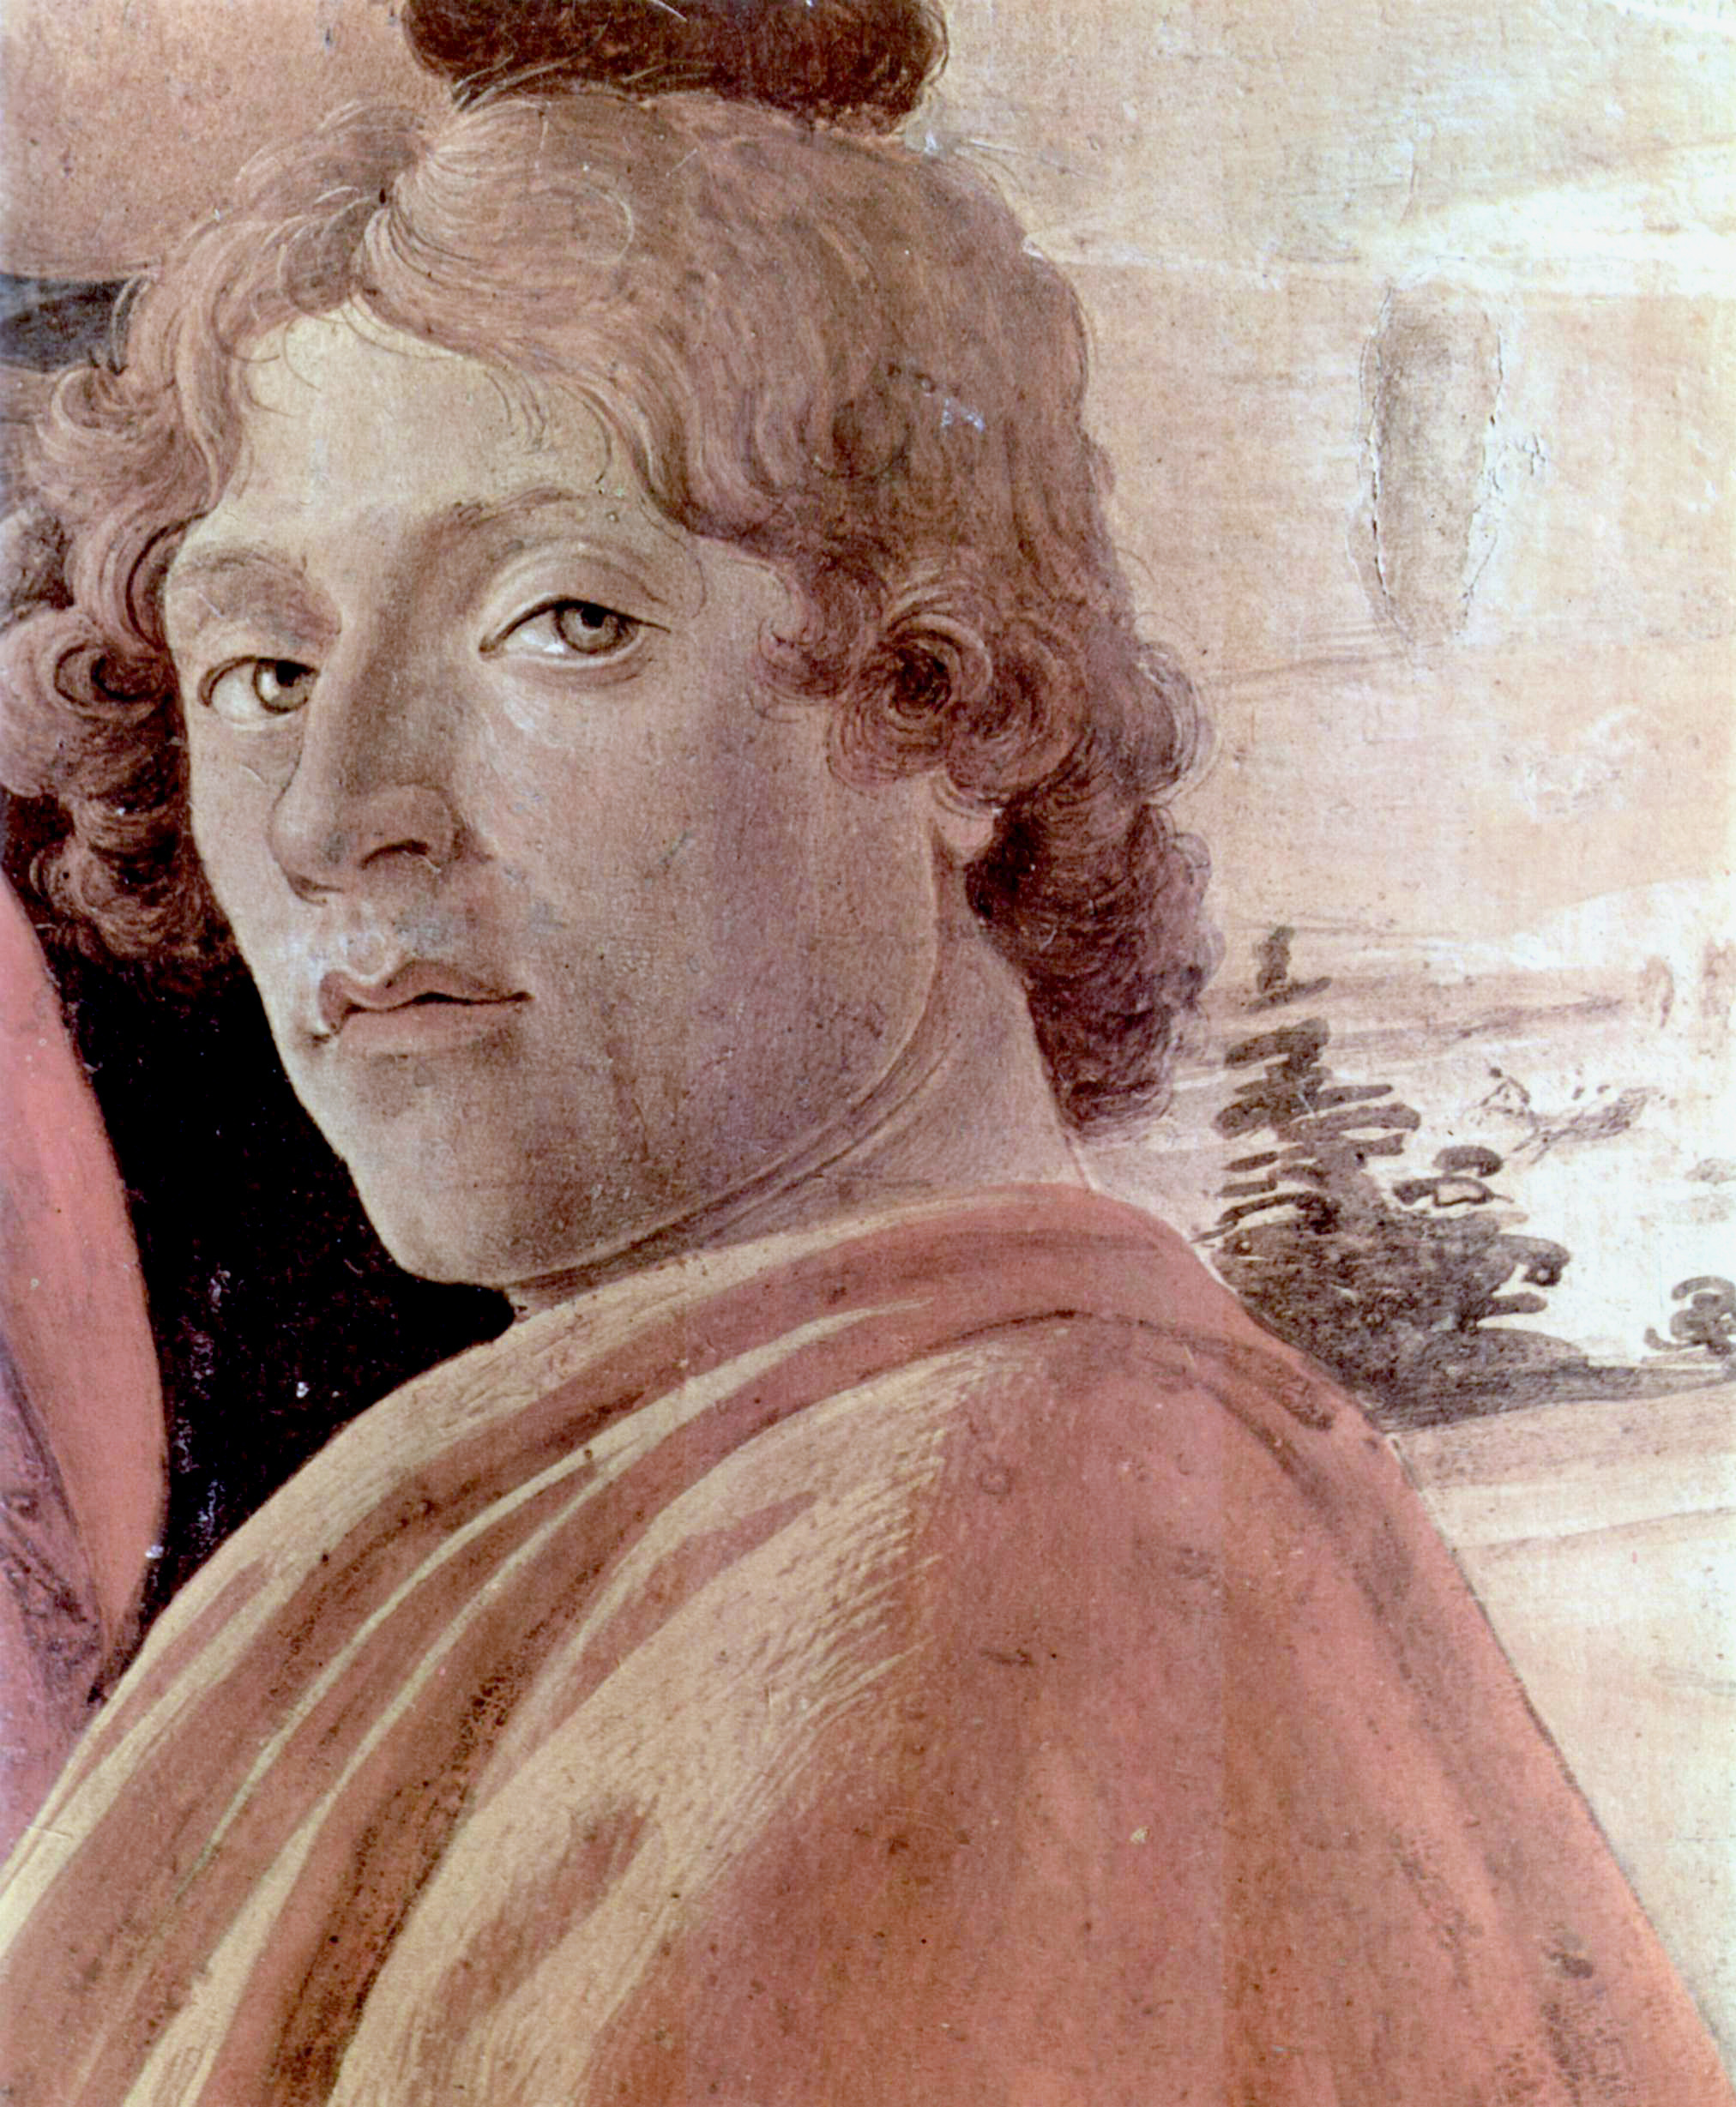 Probable self-portrait of Botticelli, in his Adoration of the Magi